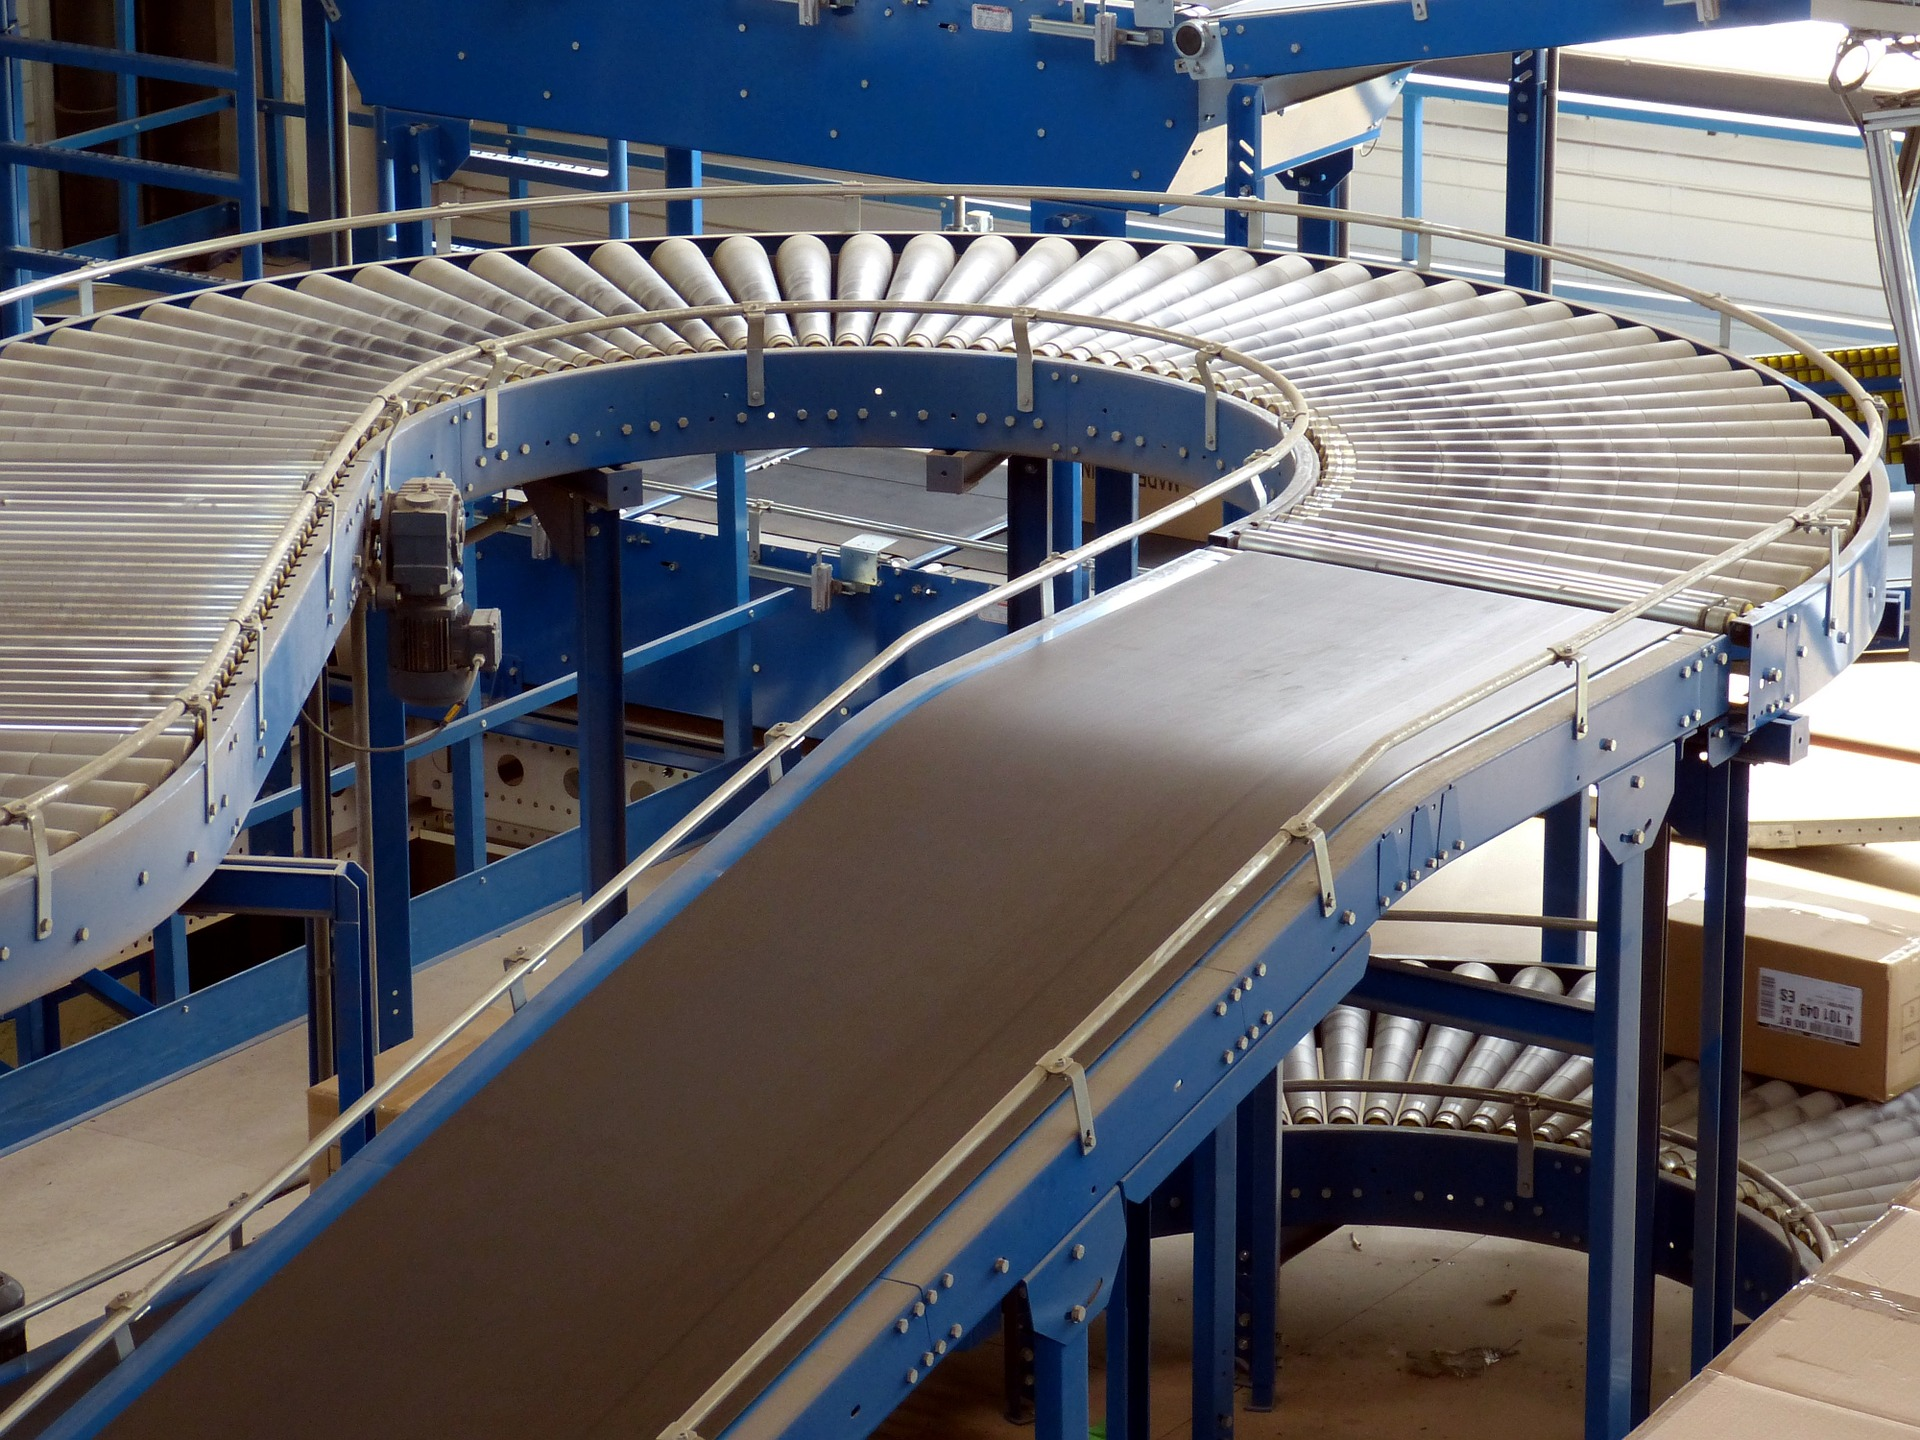 A company using a conveyor belt like this may also need a pallet lifter.